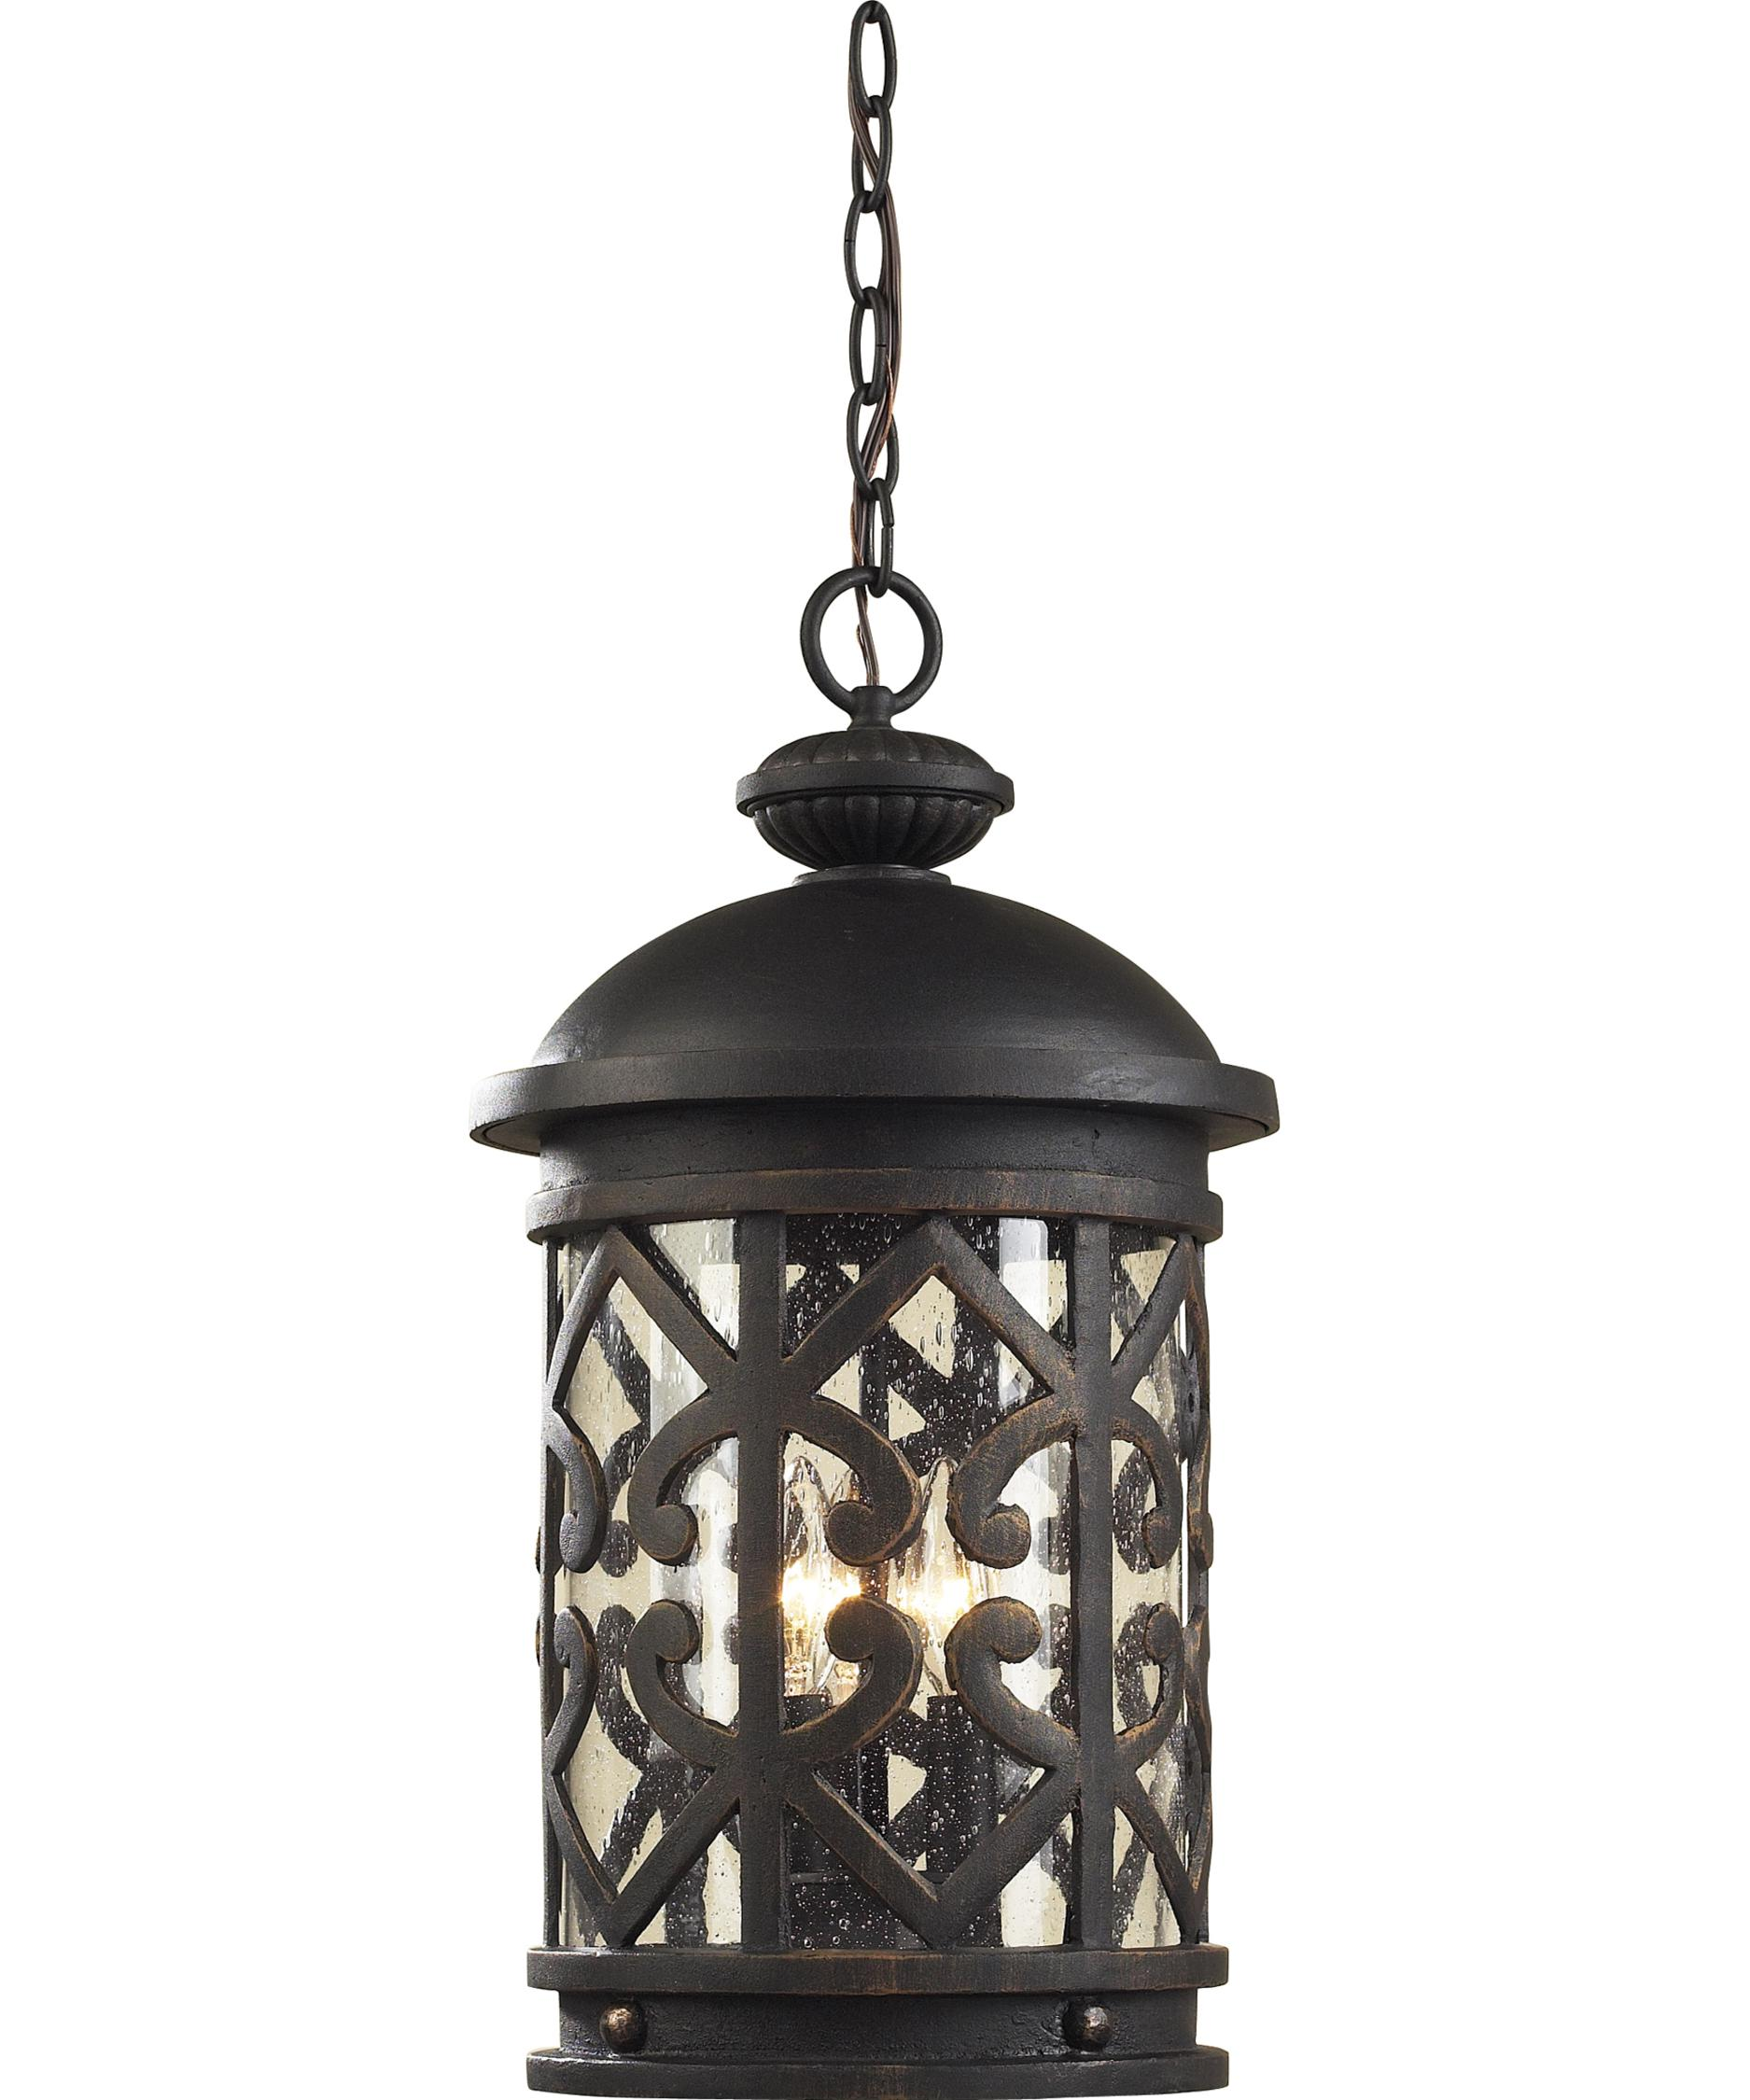 Outdoor hanging lamp - Shown In Weathered Charcoal Finish And Seeded Glass